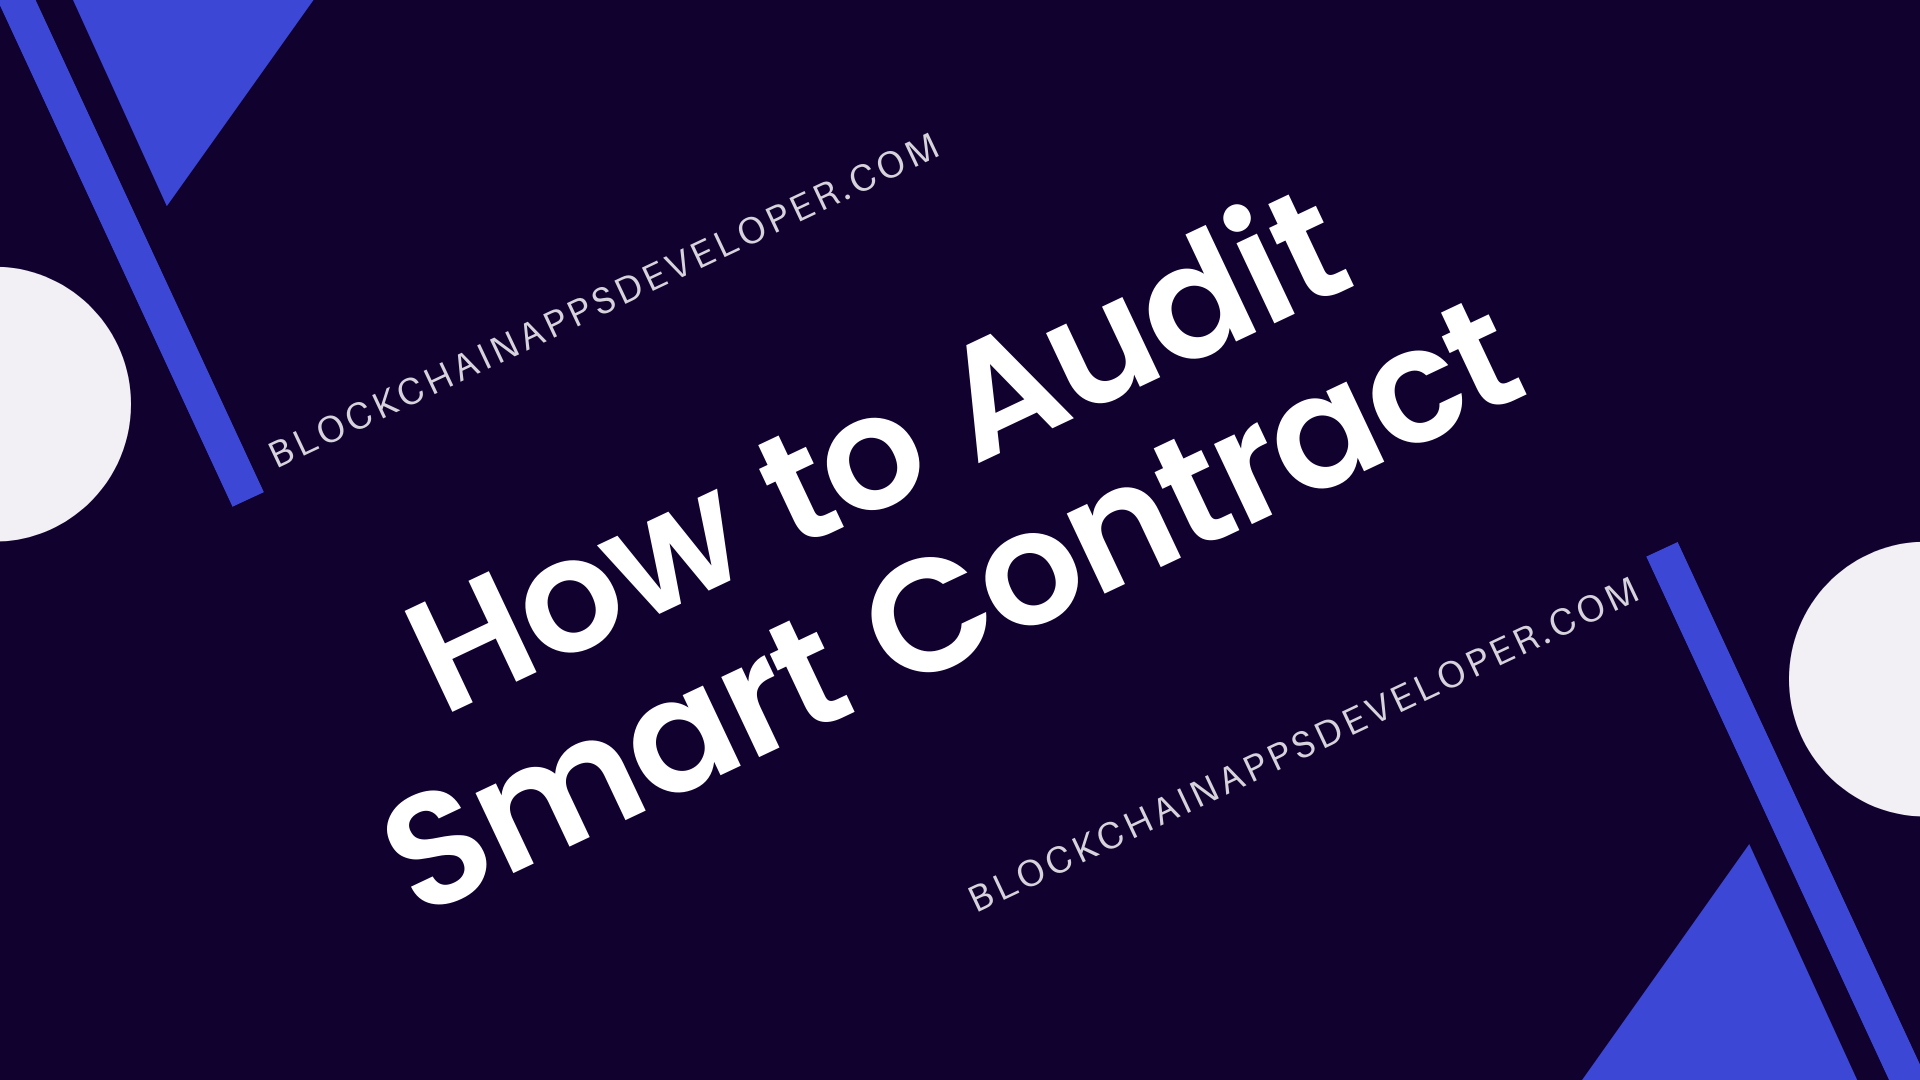 How to Audit Smart Contract?